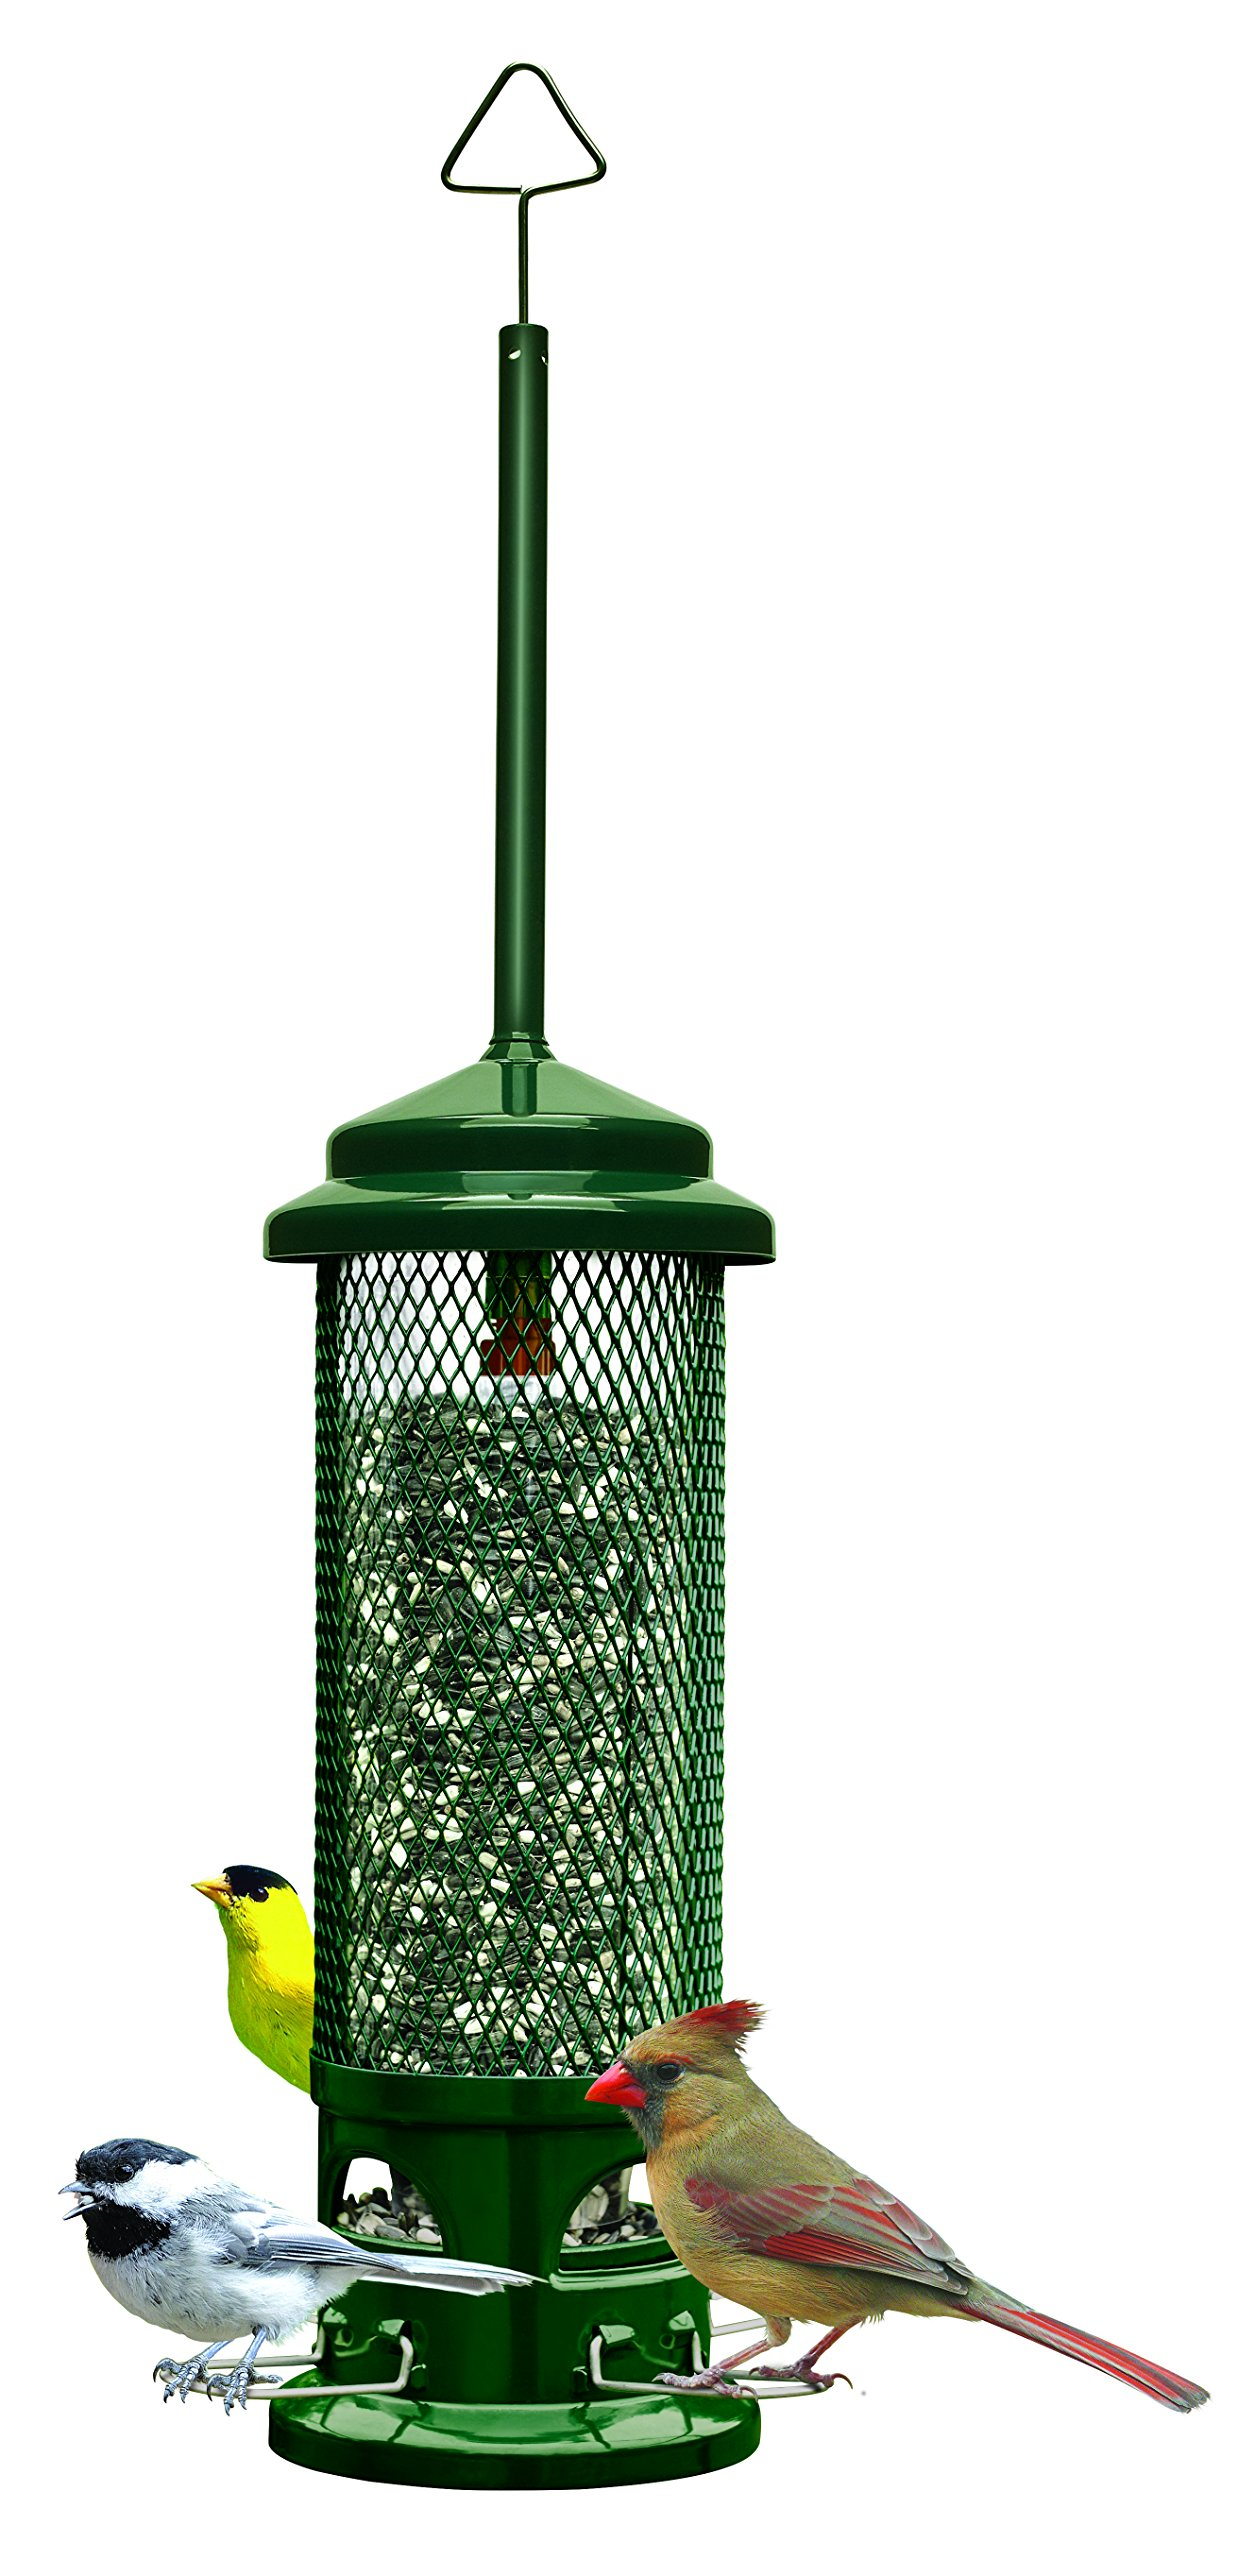 Squirrel Buster Legacy 5.5''x5.5''x24'' (w/hanger) Wild Bird Feeder with 4 Metal Perches, 2.6lb Seed Capacity